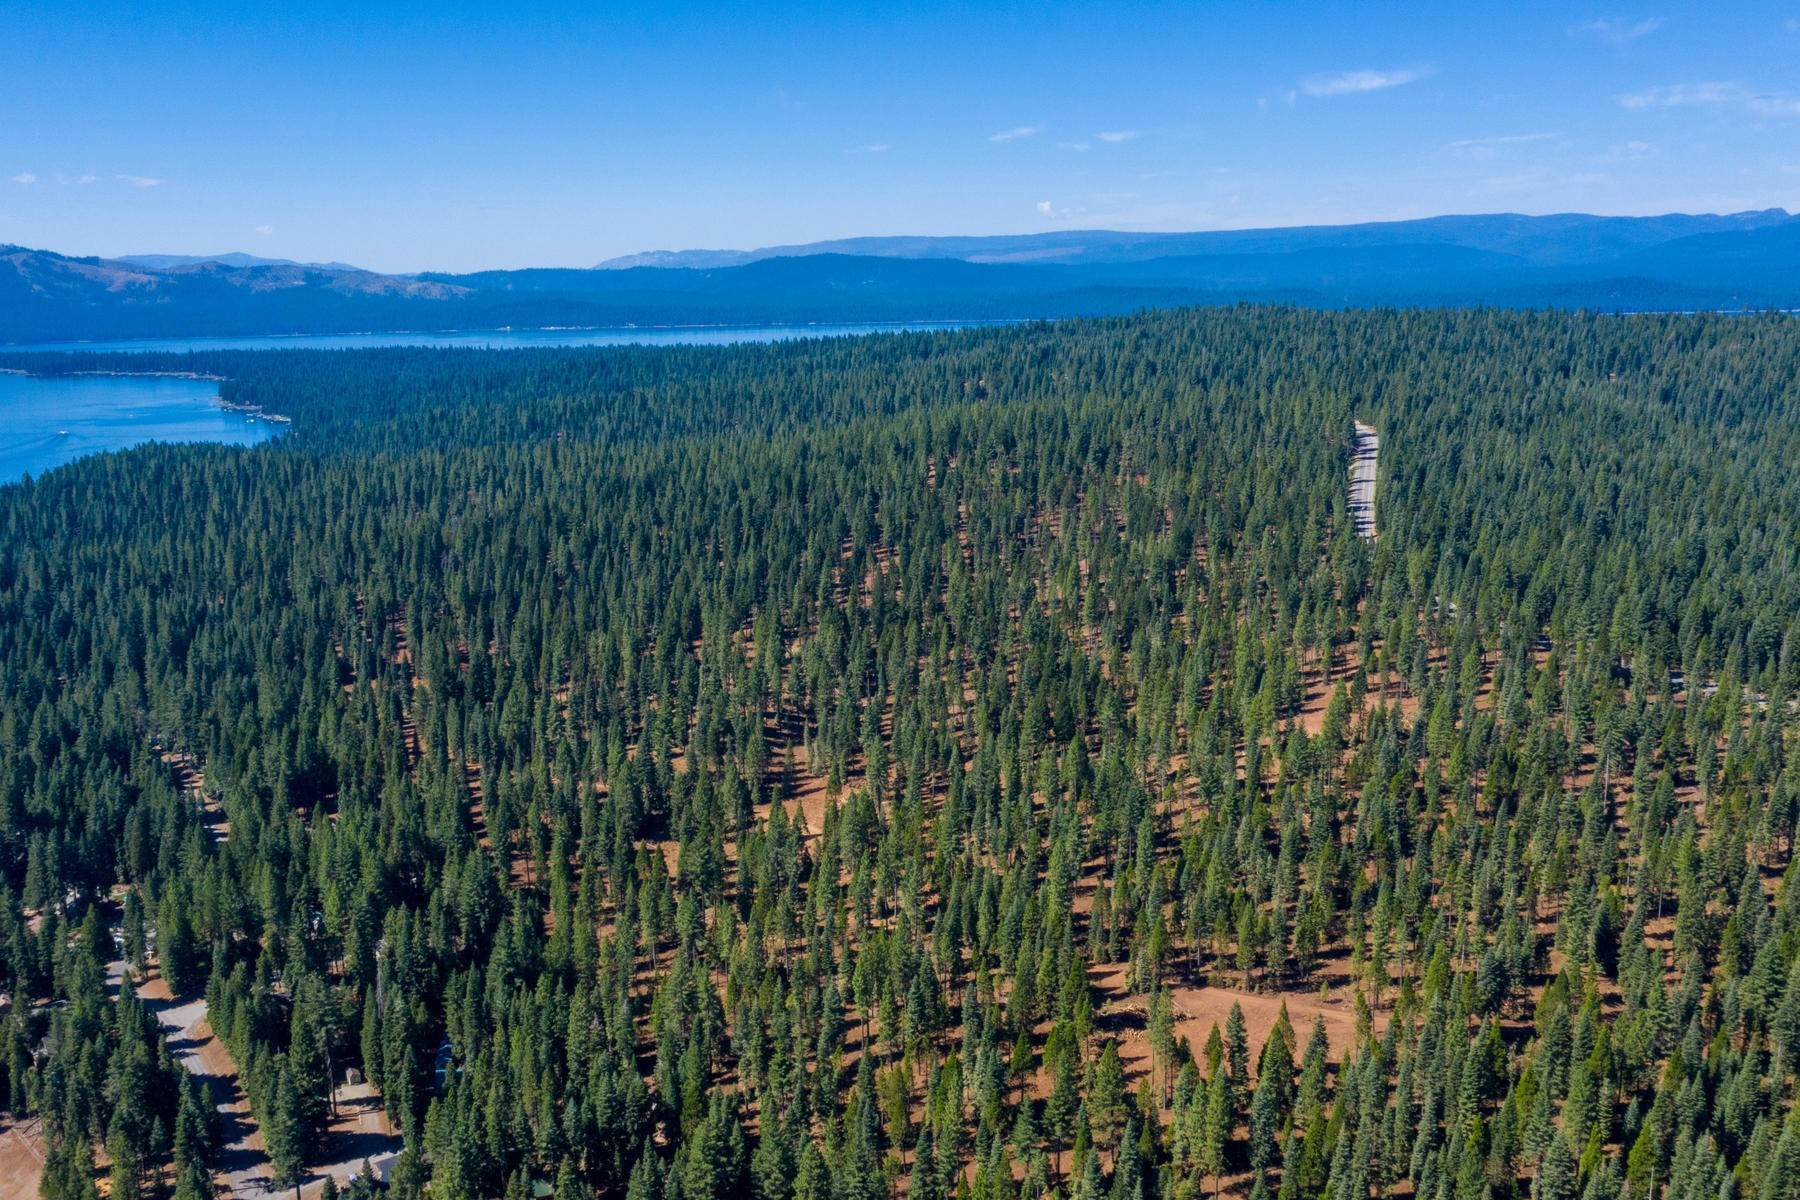 Terreno en 103-02 Clifford Drive Lake Almanor, California 96137 103-02 Clifford Drive Lake Almanor, California 96137 Estados Unidos